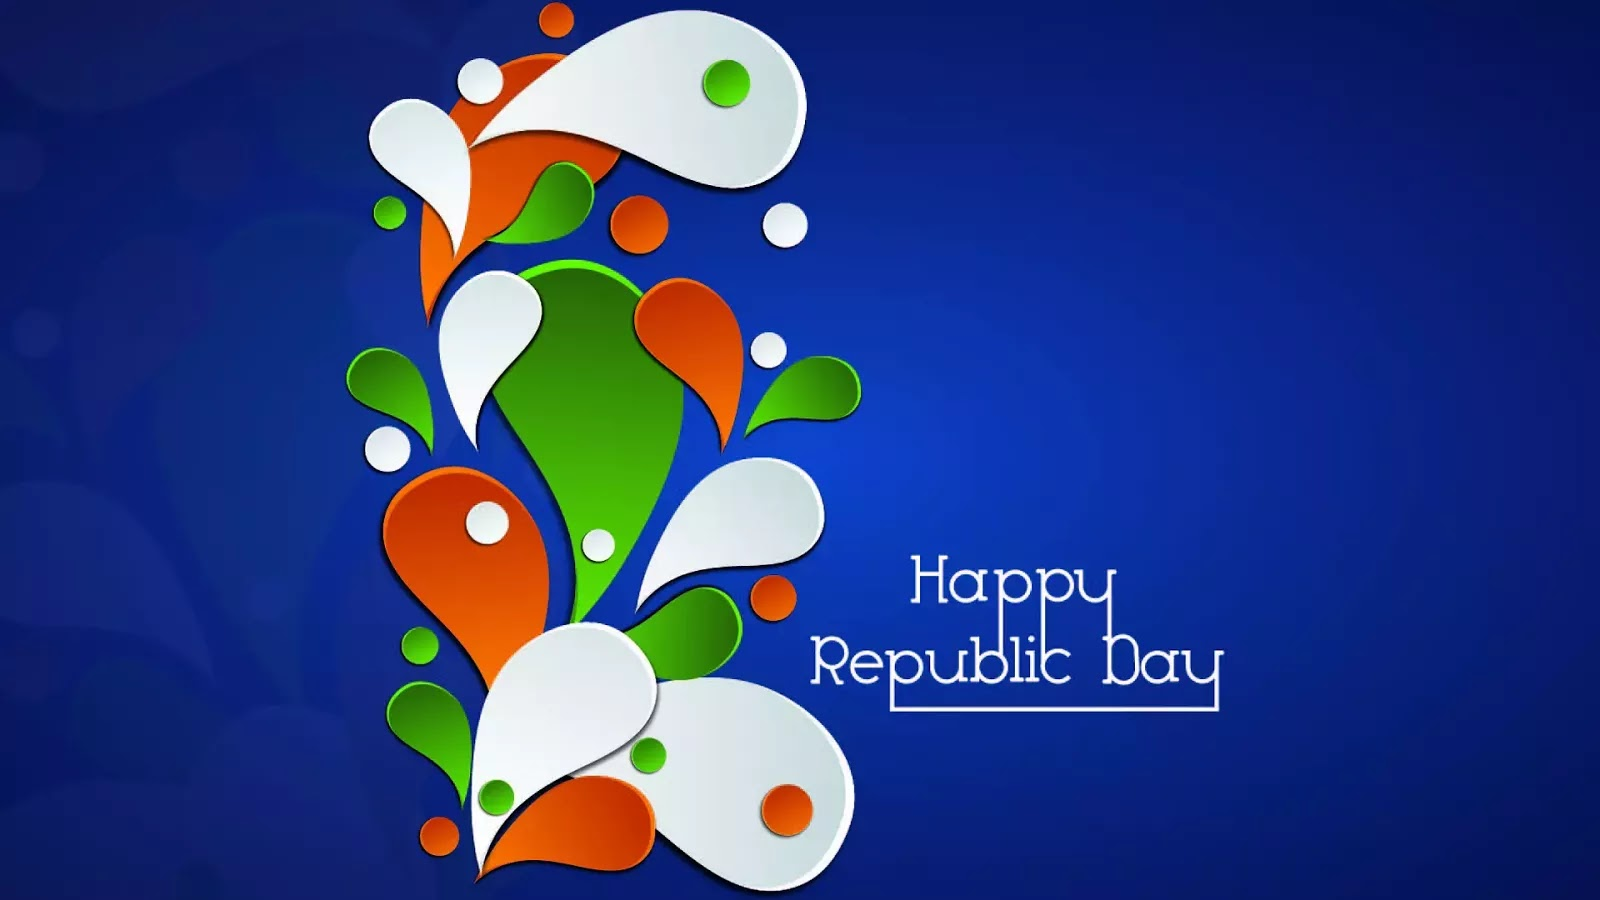 Happy republic day speech